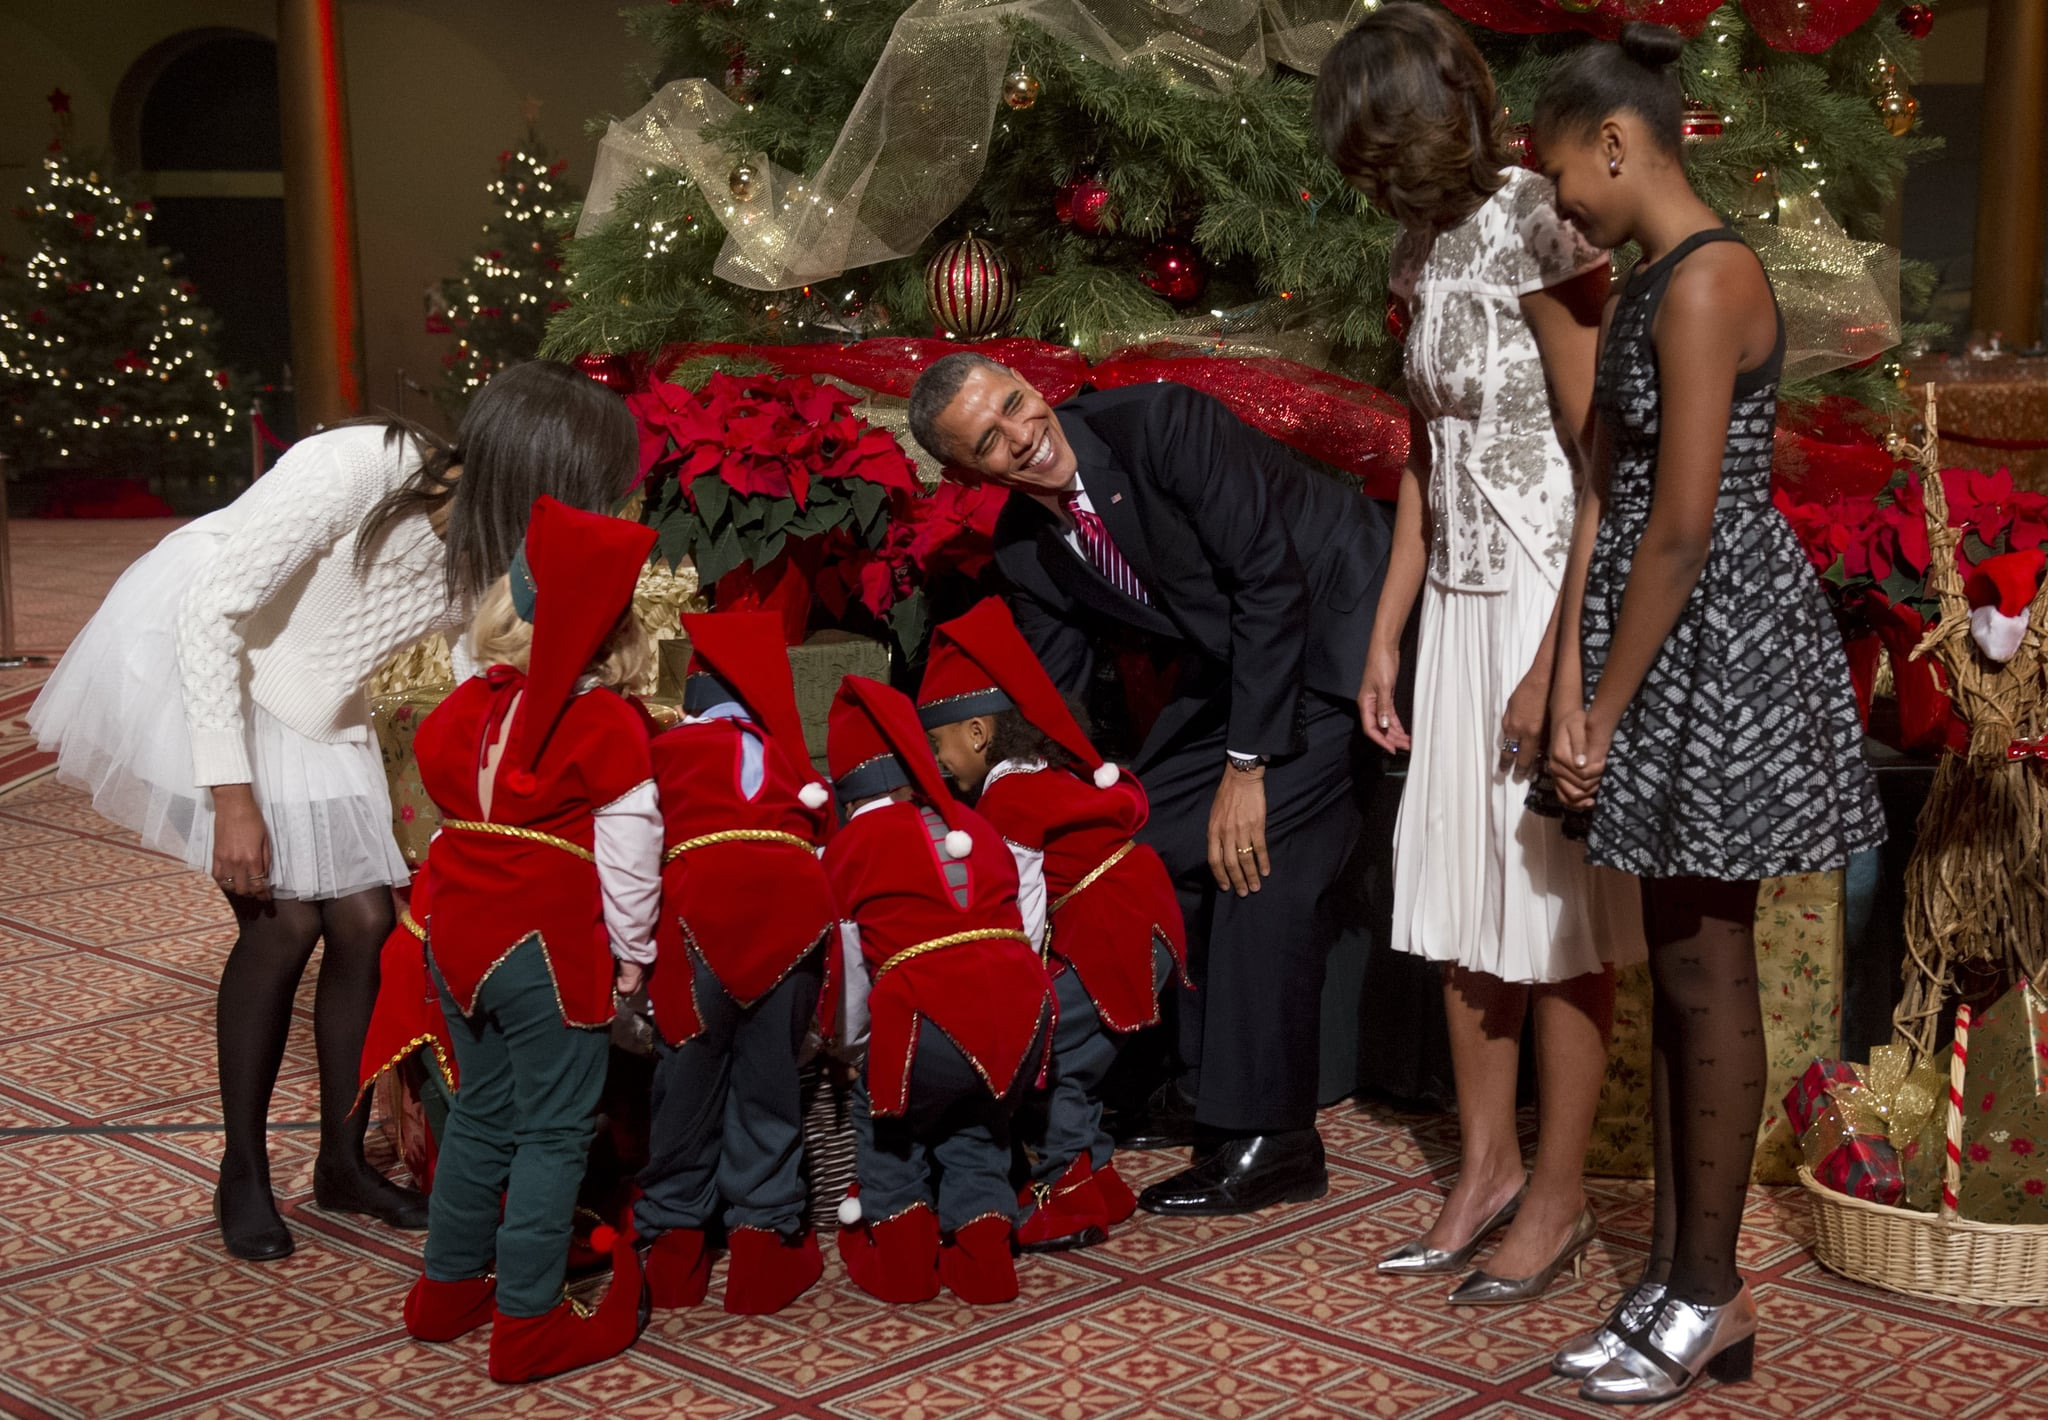 President Obama handed out treats to the little elves.